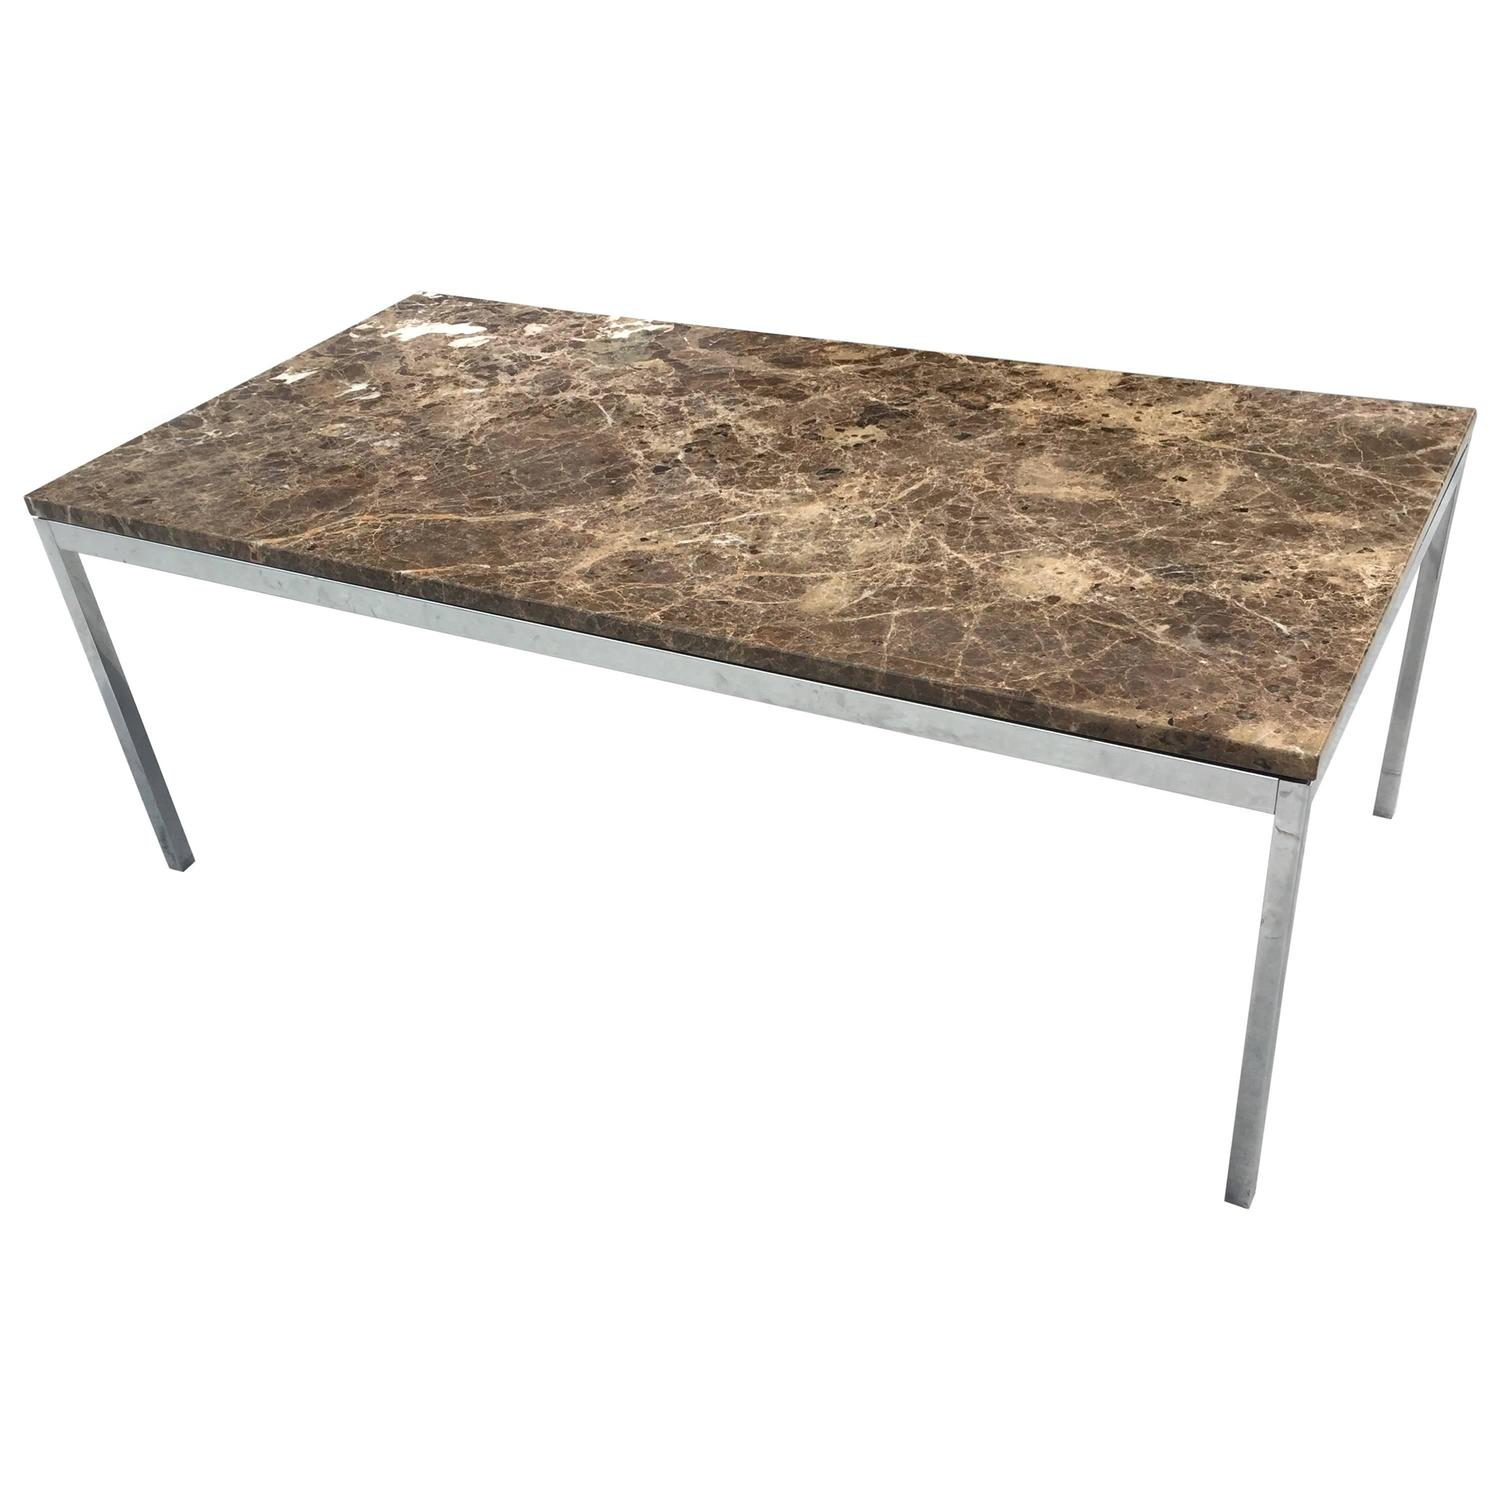 Florence knoll emperador dark marble coffee table for knoll studio at 1stdibs Florence knoll coffee table